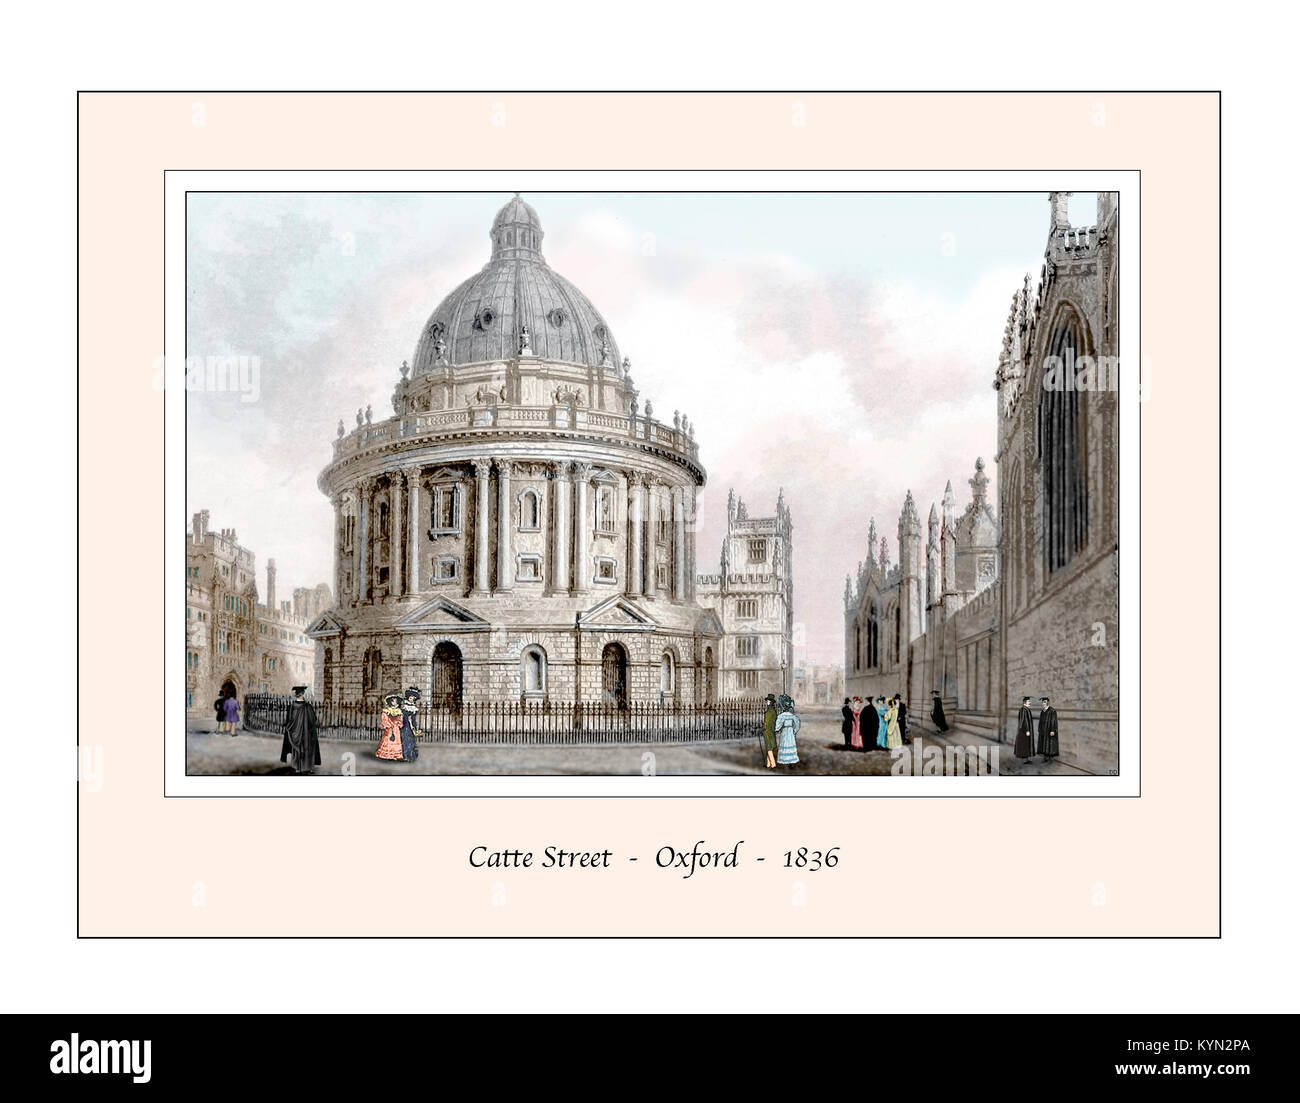 Catte Street Oxford Original Design based on a 19th century Engraving - Stock Image